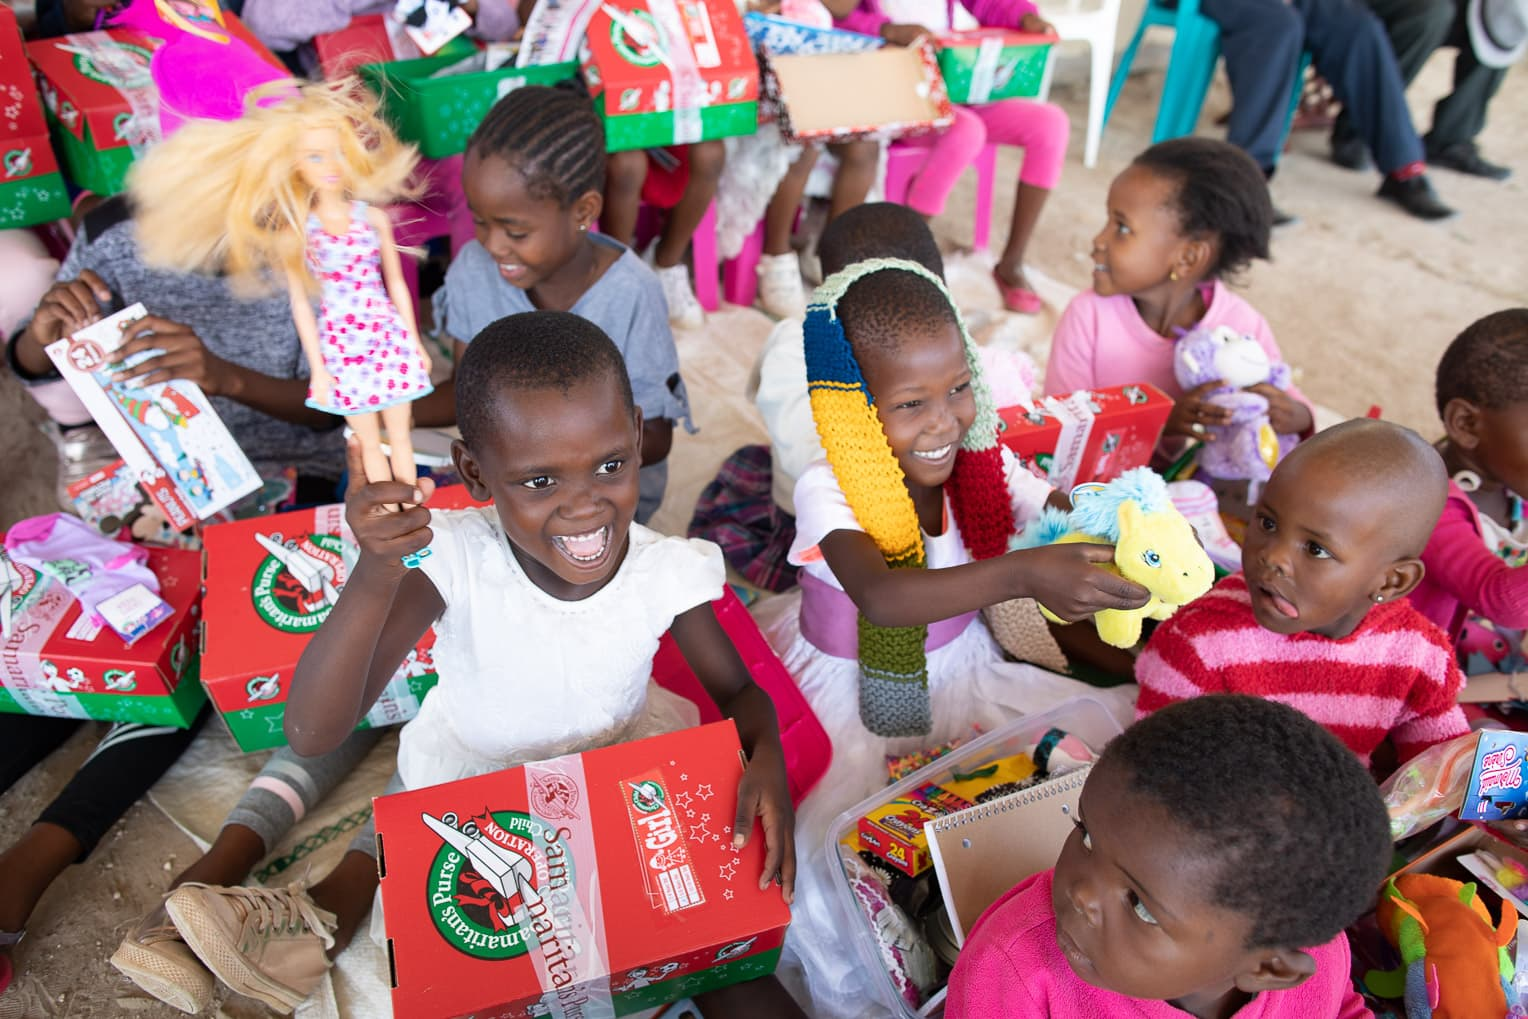 Children in rural communities in Botswana are sharing what they have learned about God and the Bible through Operation Christmas Child and The Greatest Journey.